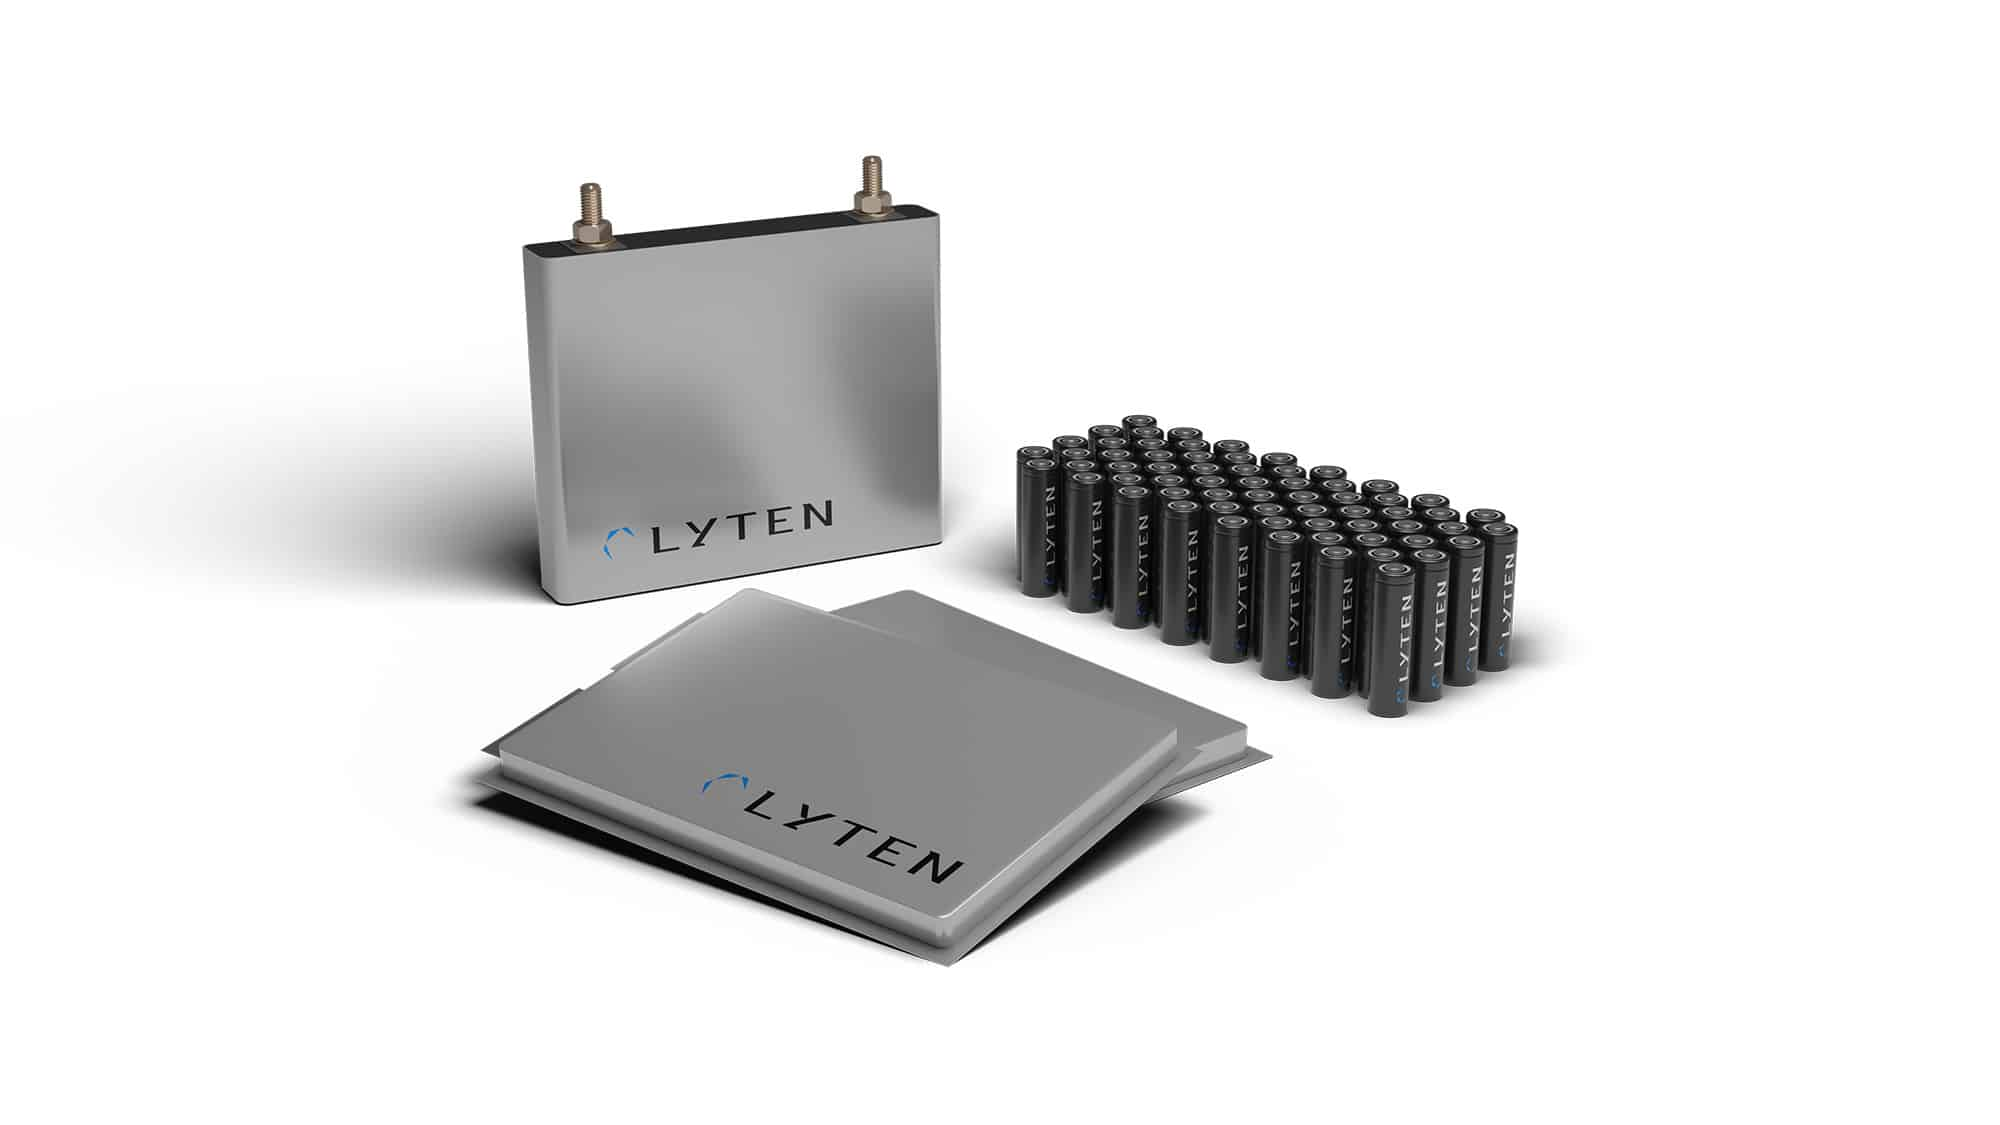 Lyten 18650 battery and pouch battery